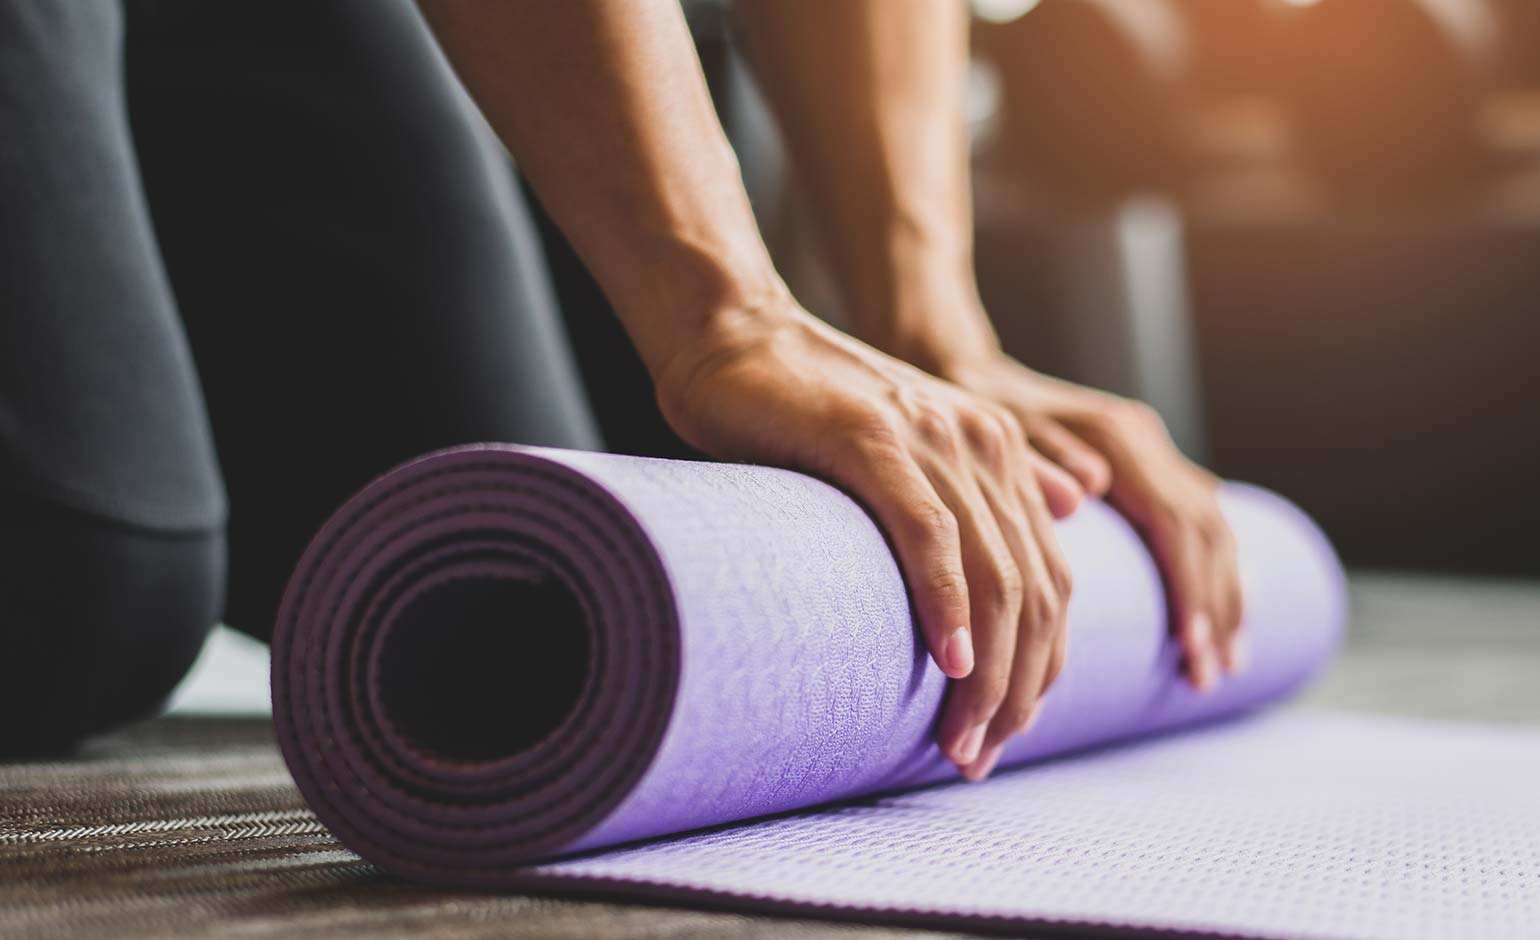 Free yoga sessions on offer at the SouthGate shopping centre in Bath